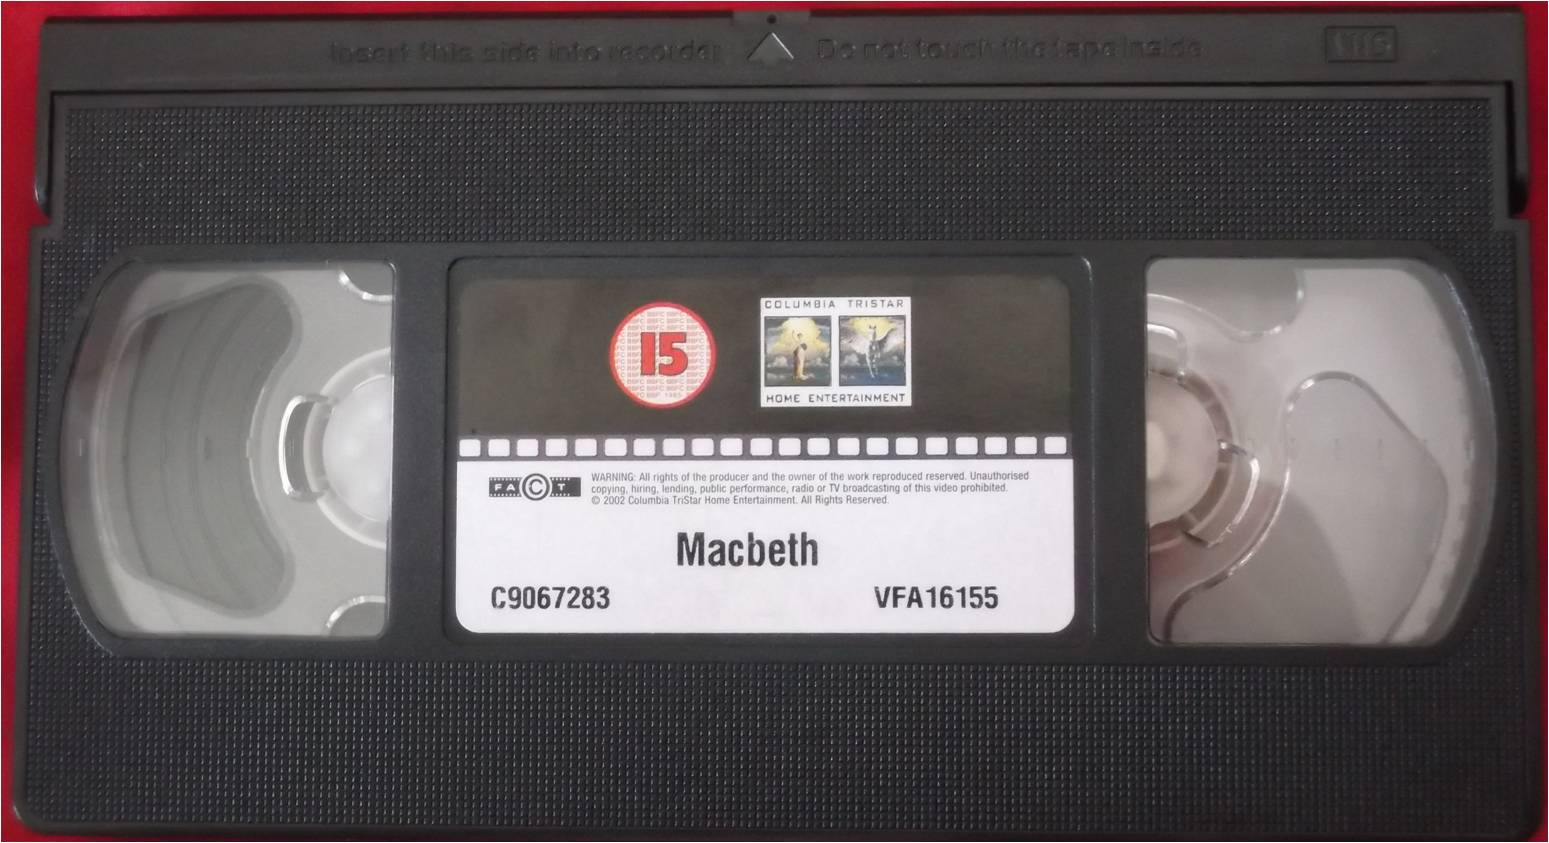 image - columbia tristar home video 2003 alternative vhs tape